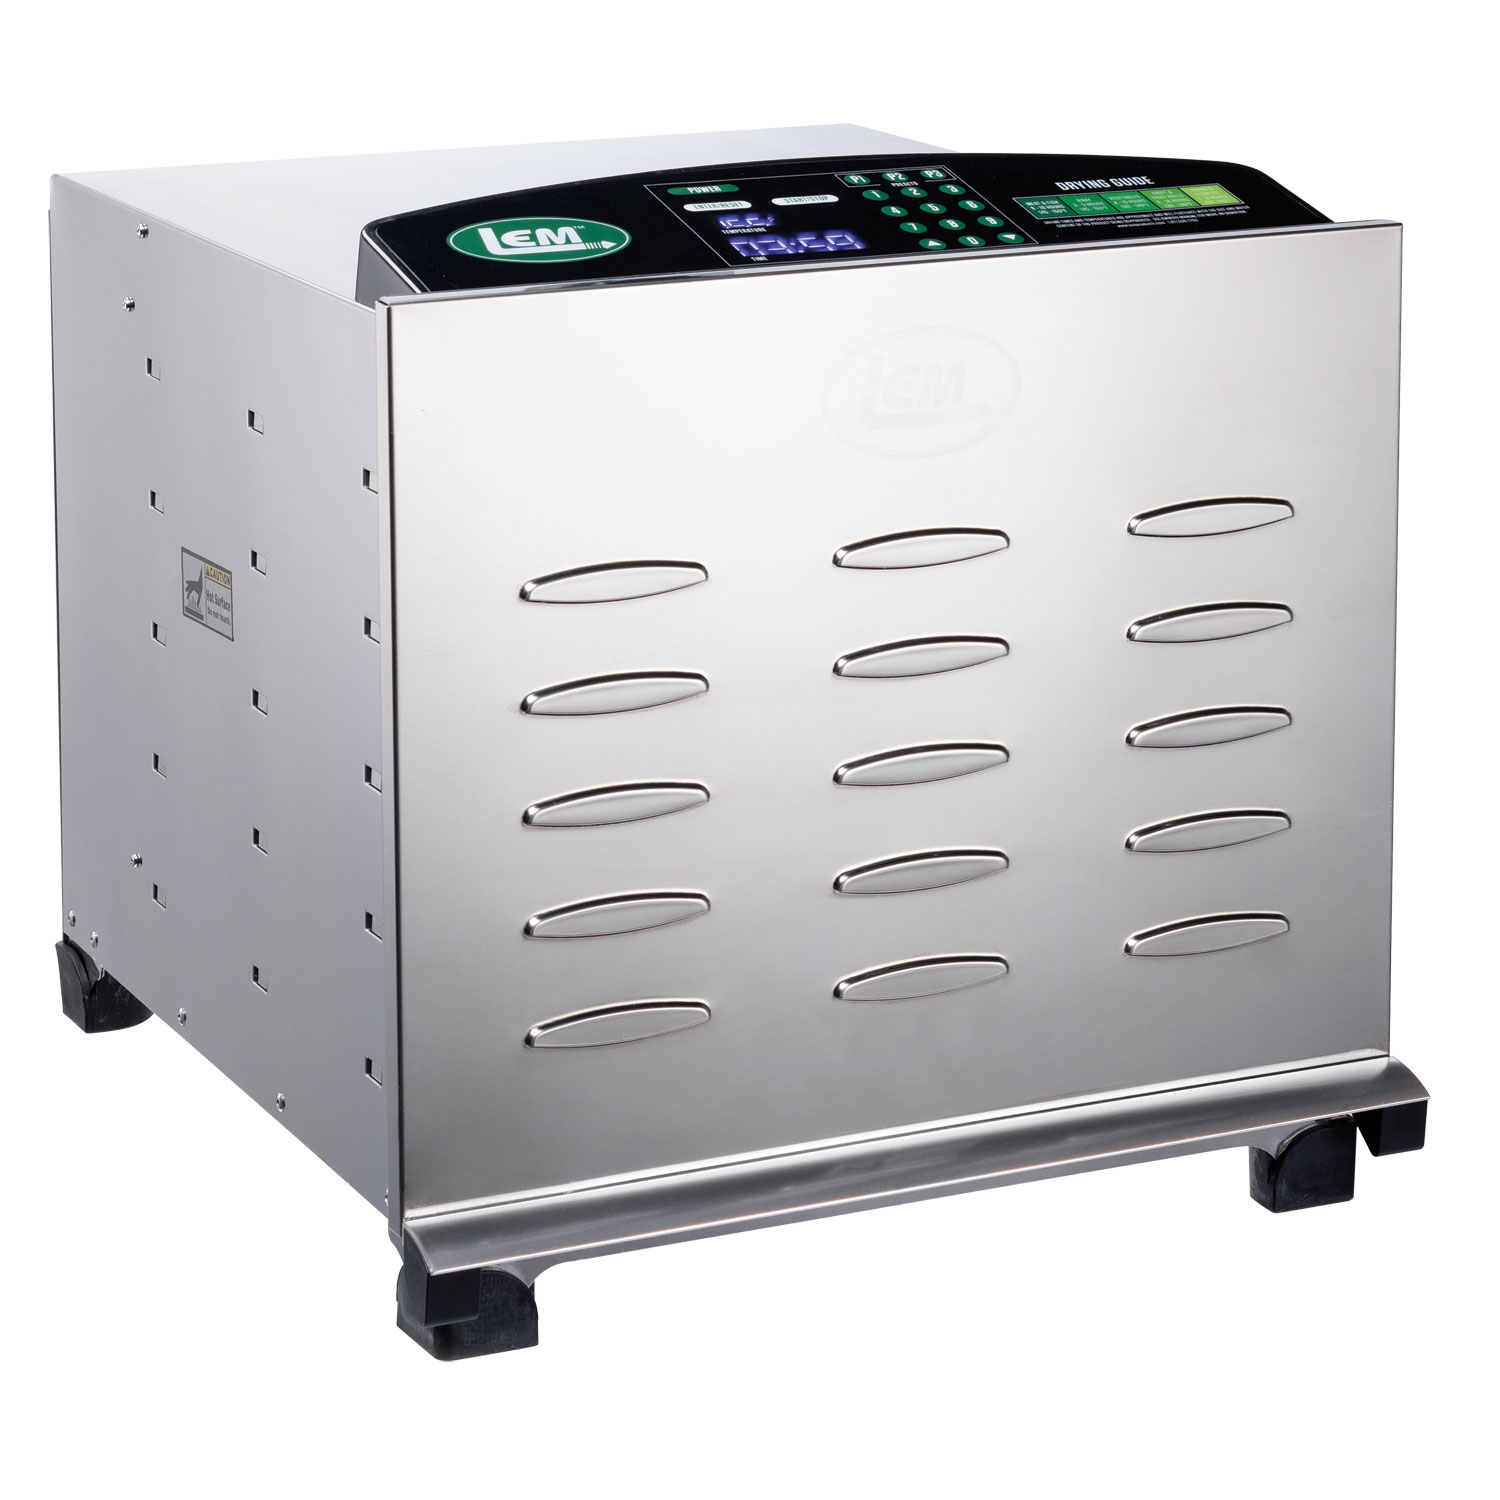 Big Bite® Digital Stainless Steel Dehydrator - Big Bite Digital Dehydrator